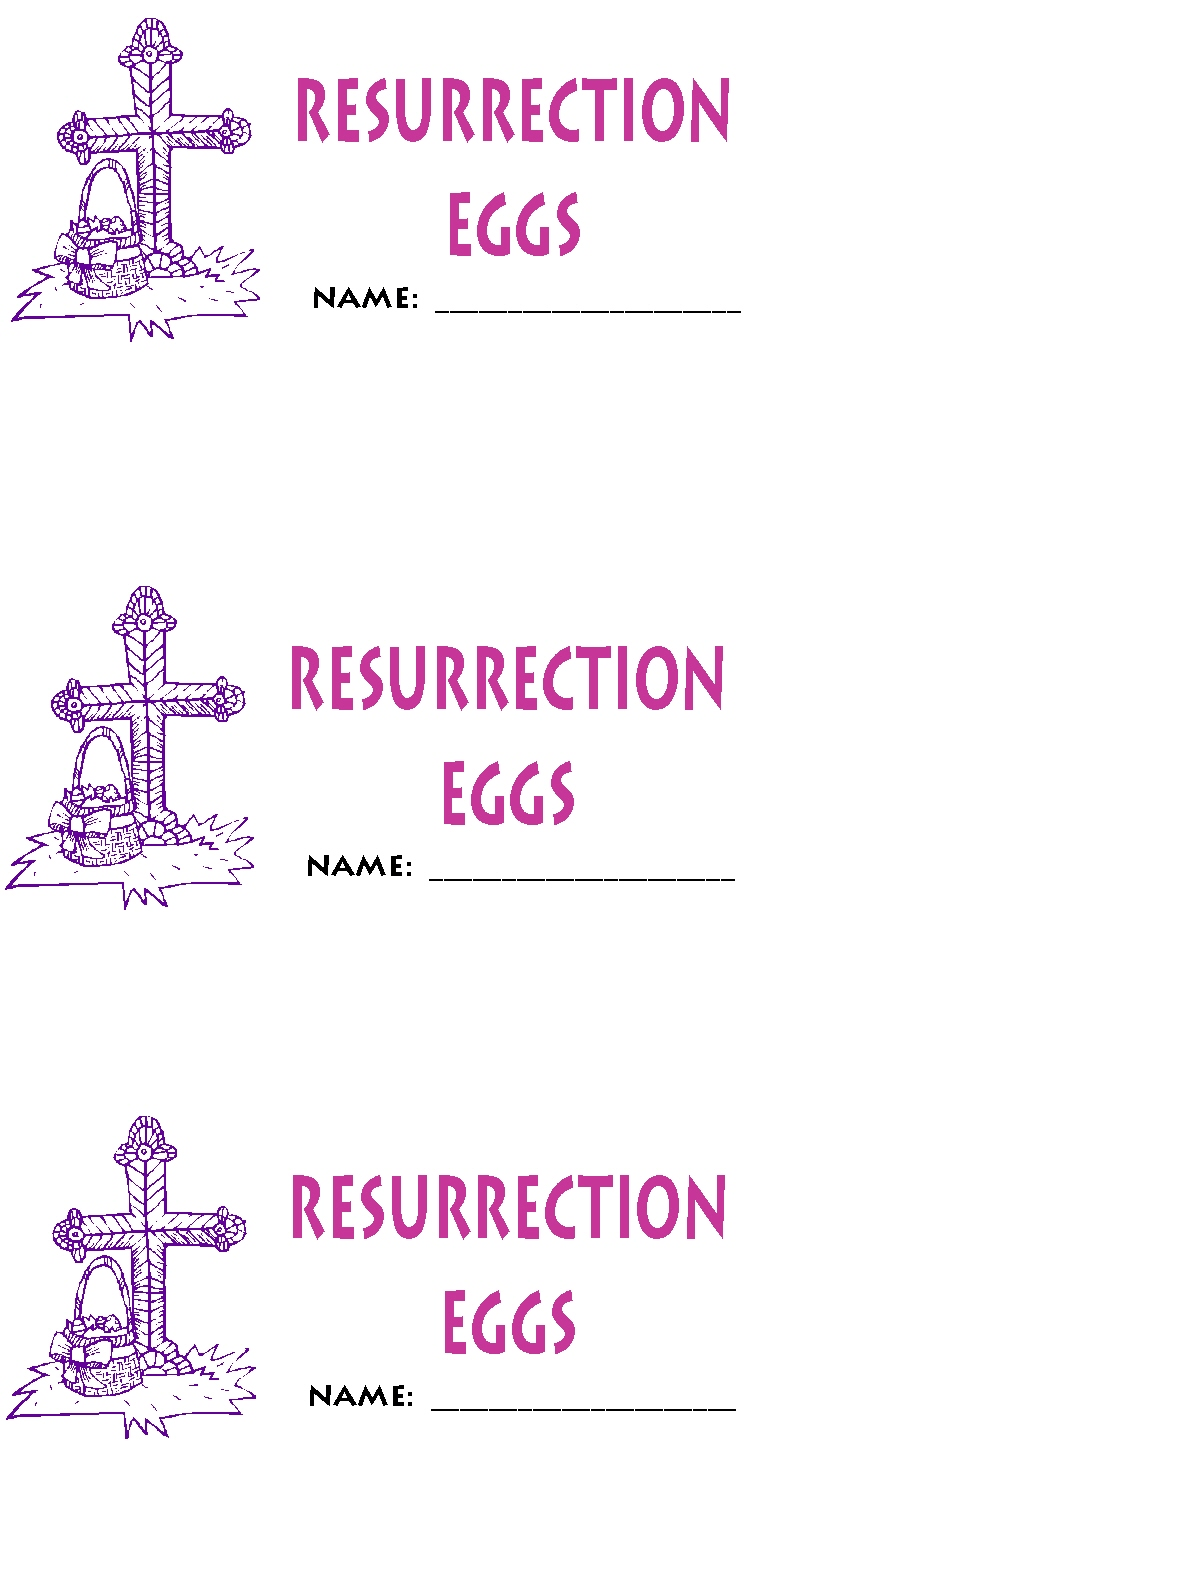 Homemade Resurrection Eggs free printables | Kathy Hutto